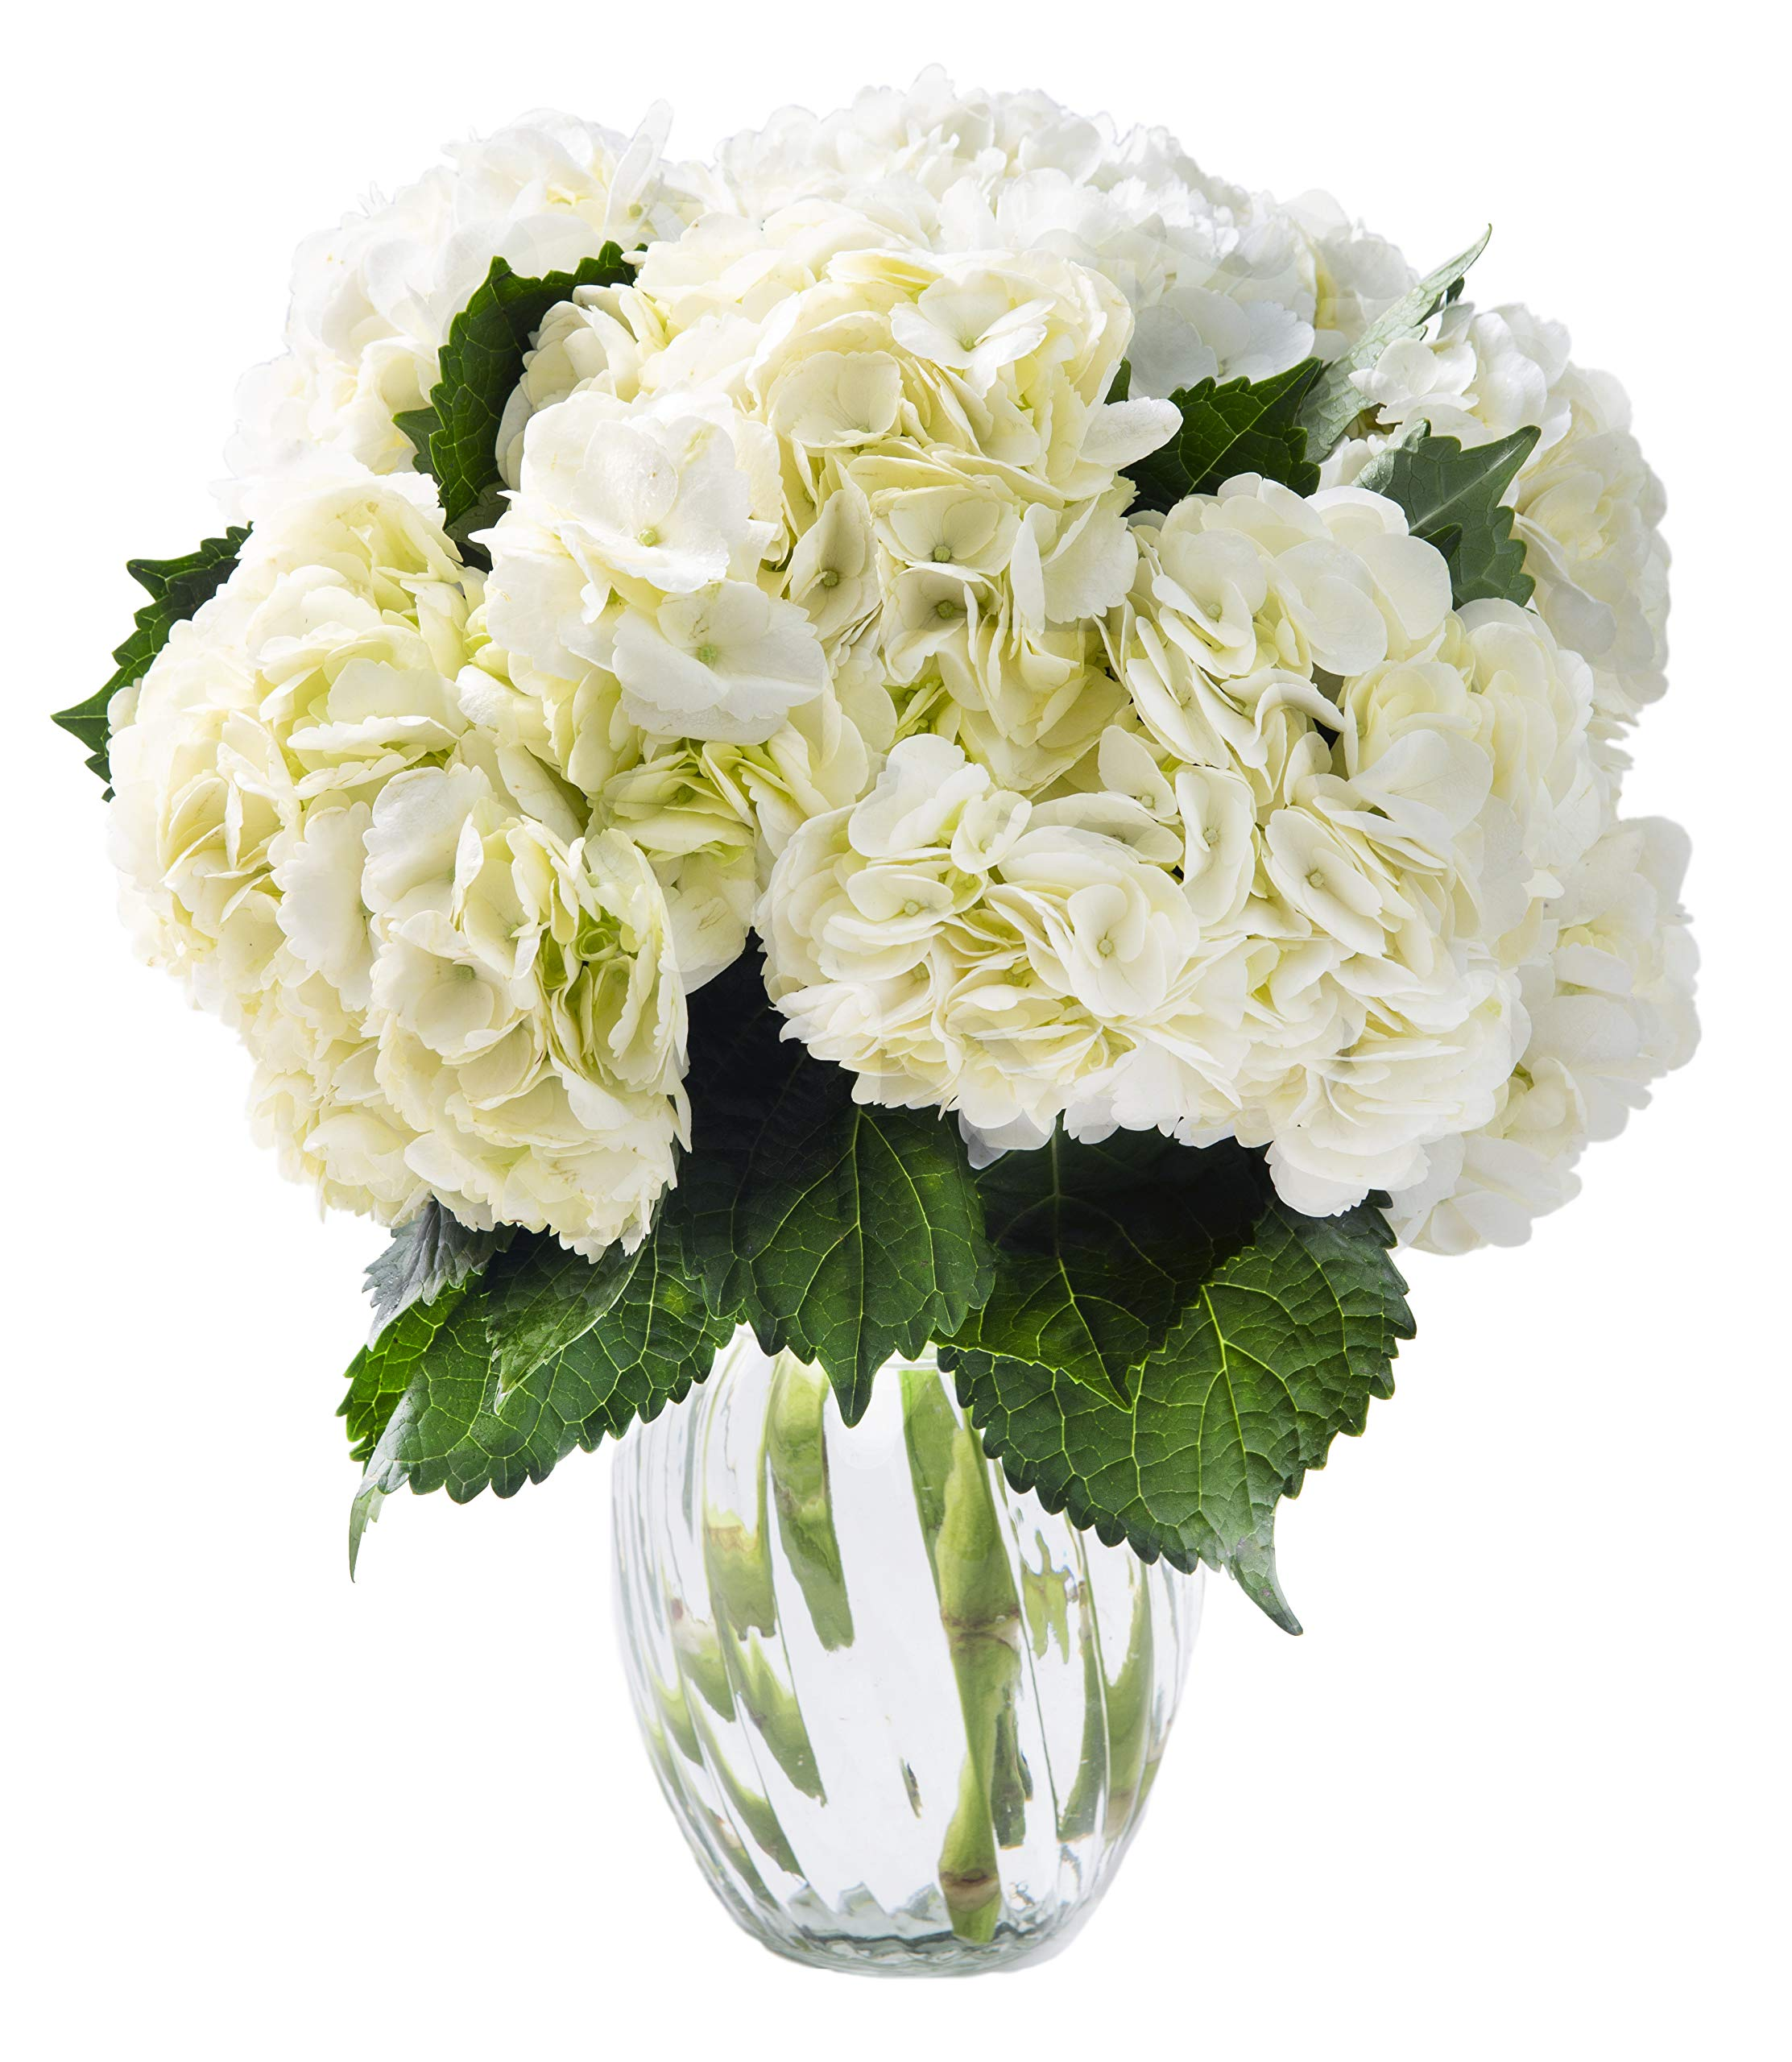 KaBloom Summer Beauty Bouquet of 6 White Hydrangeas with Vase by KaBloom